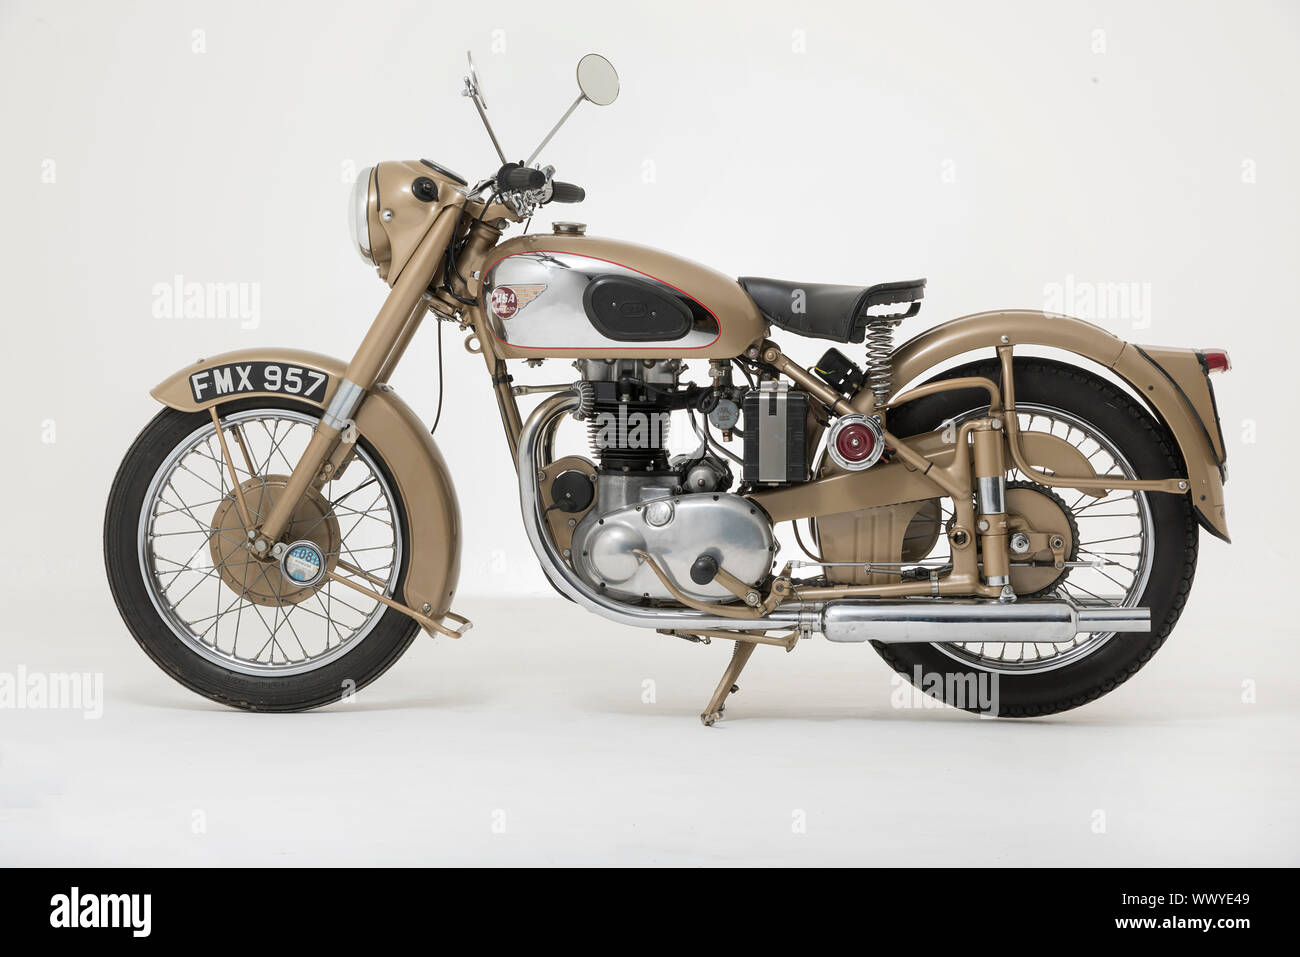 1954 BSA Golden Flash. Foto de stock